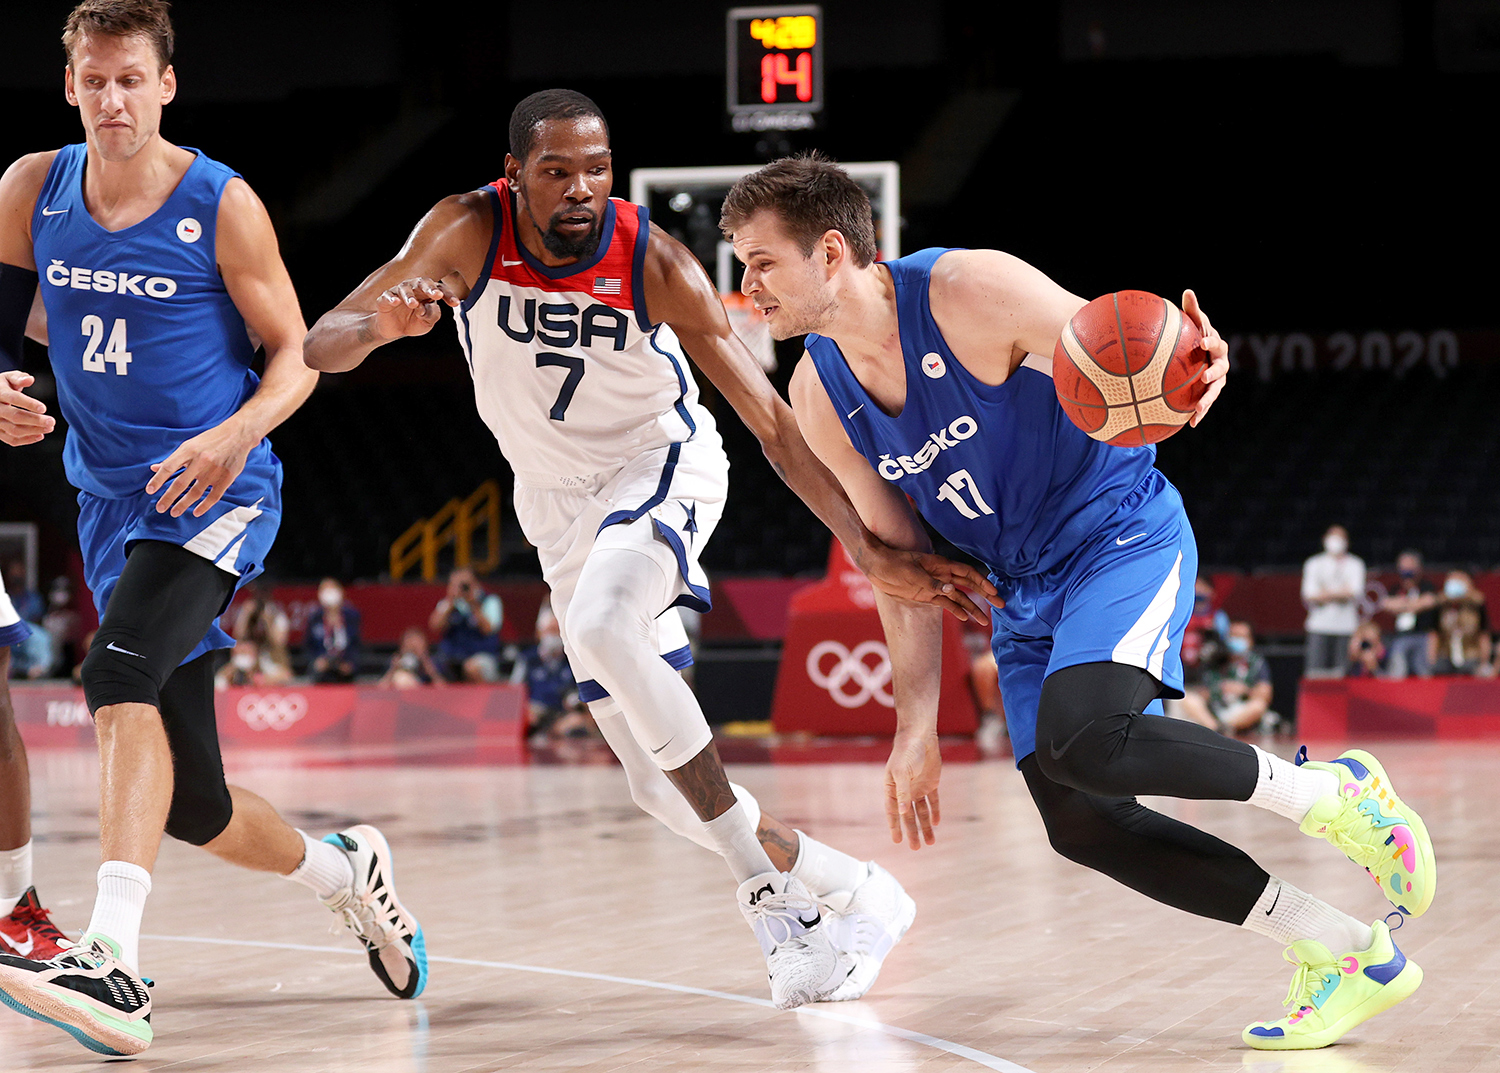 Jaromir Bohacik #17 of Team Czech Republic drives to the basket against Kevin Durant #7 of Team United States during the first half of a Men's Basketball Preliminary Round Group A game on day eight of the Tokyo 2020 Olympic Games at Saitama Super Arena on July 31, 2021 in Saitama, Japan.